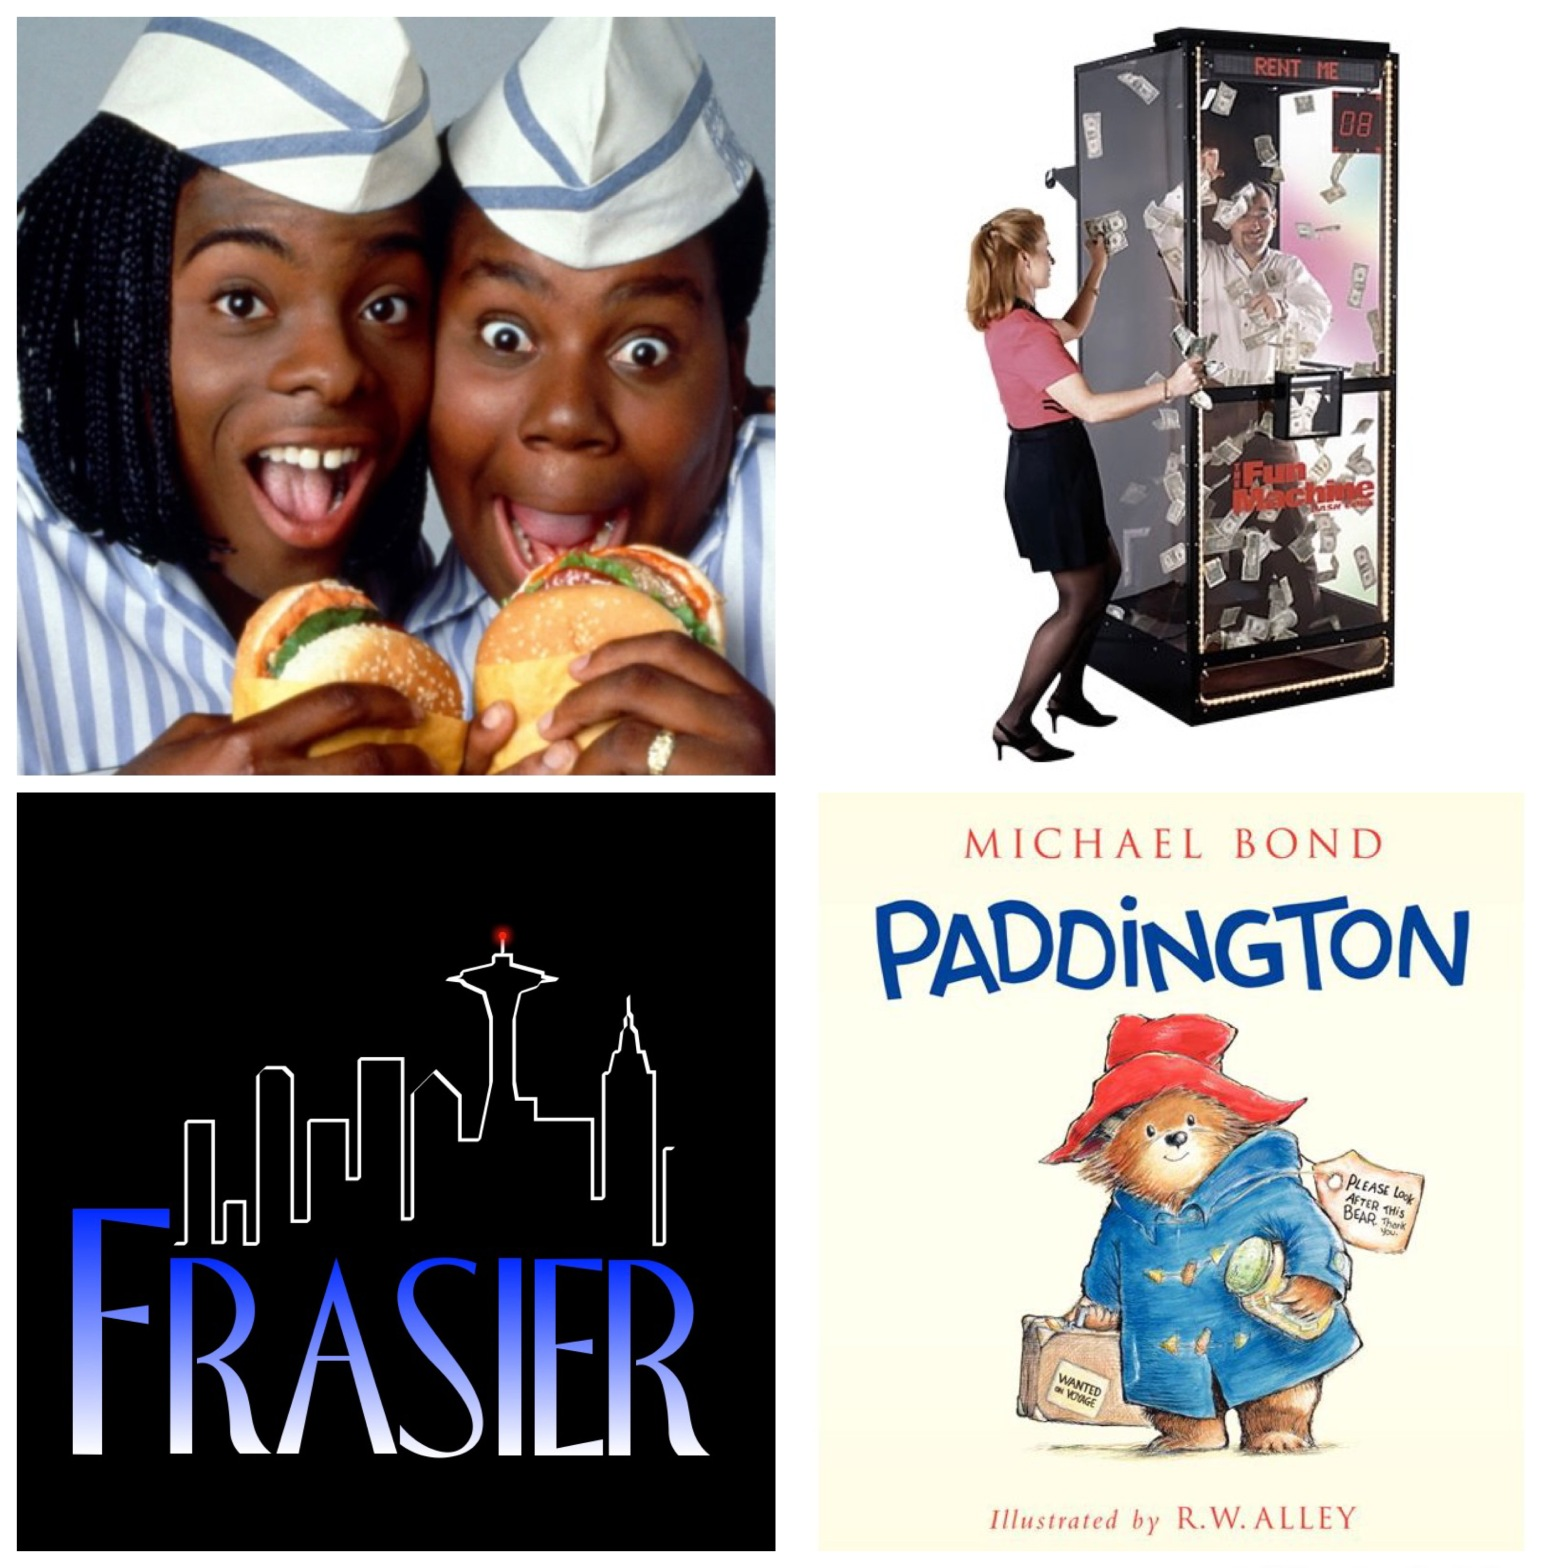 Good Burger. A Money Machine. Frasier. Paddington.